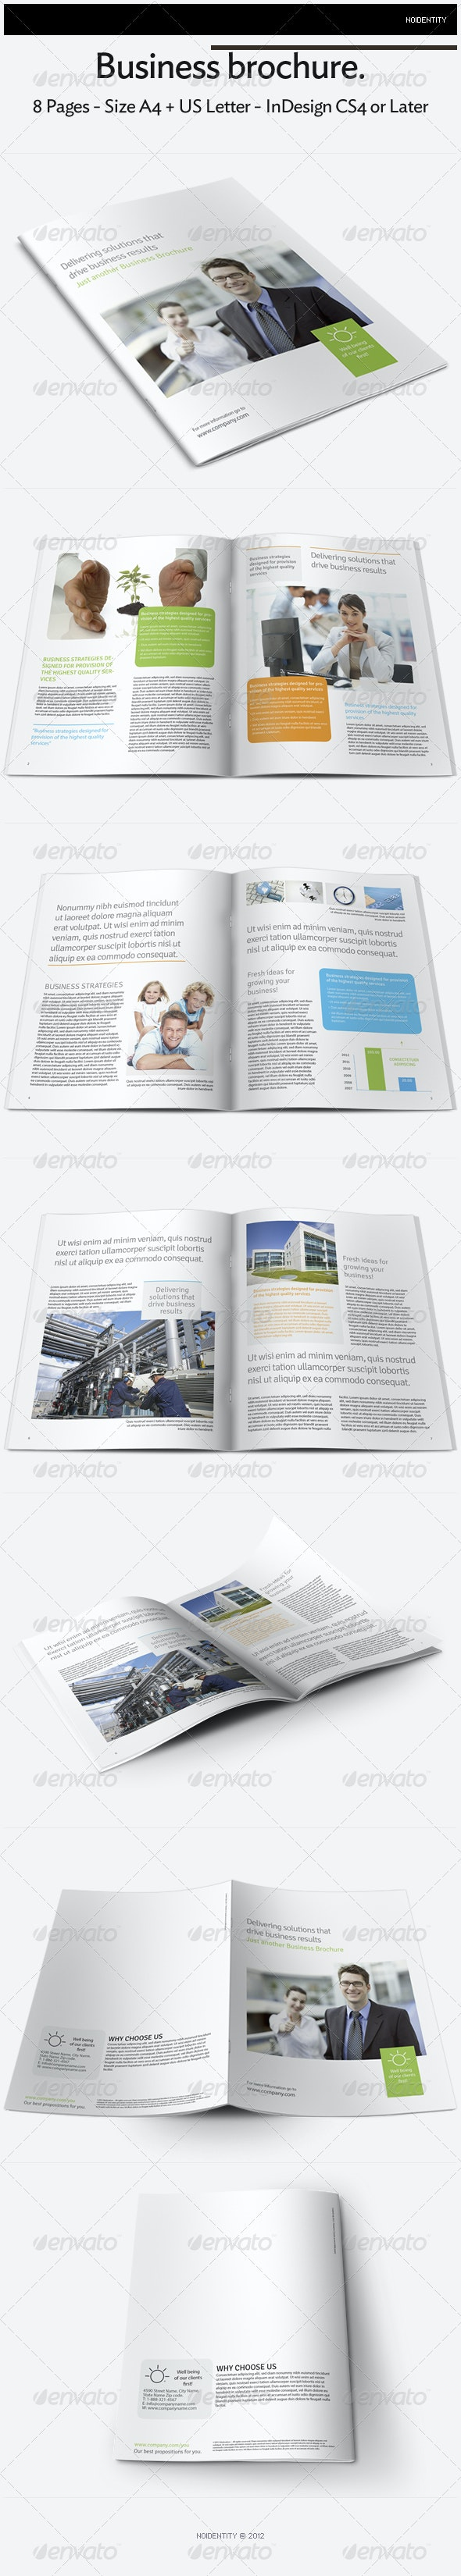 8 Pages Business Brochure - Brochures Print Templates